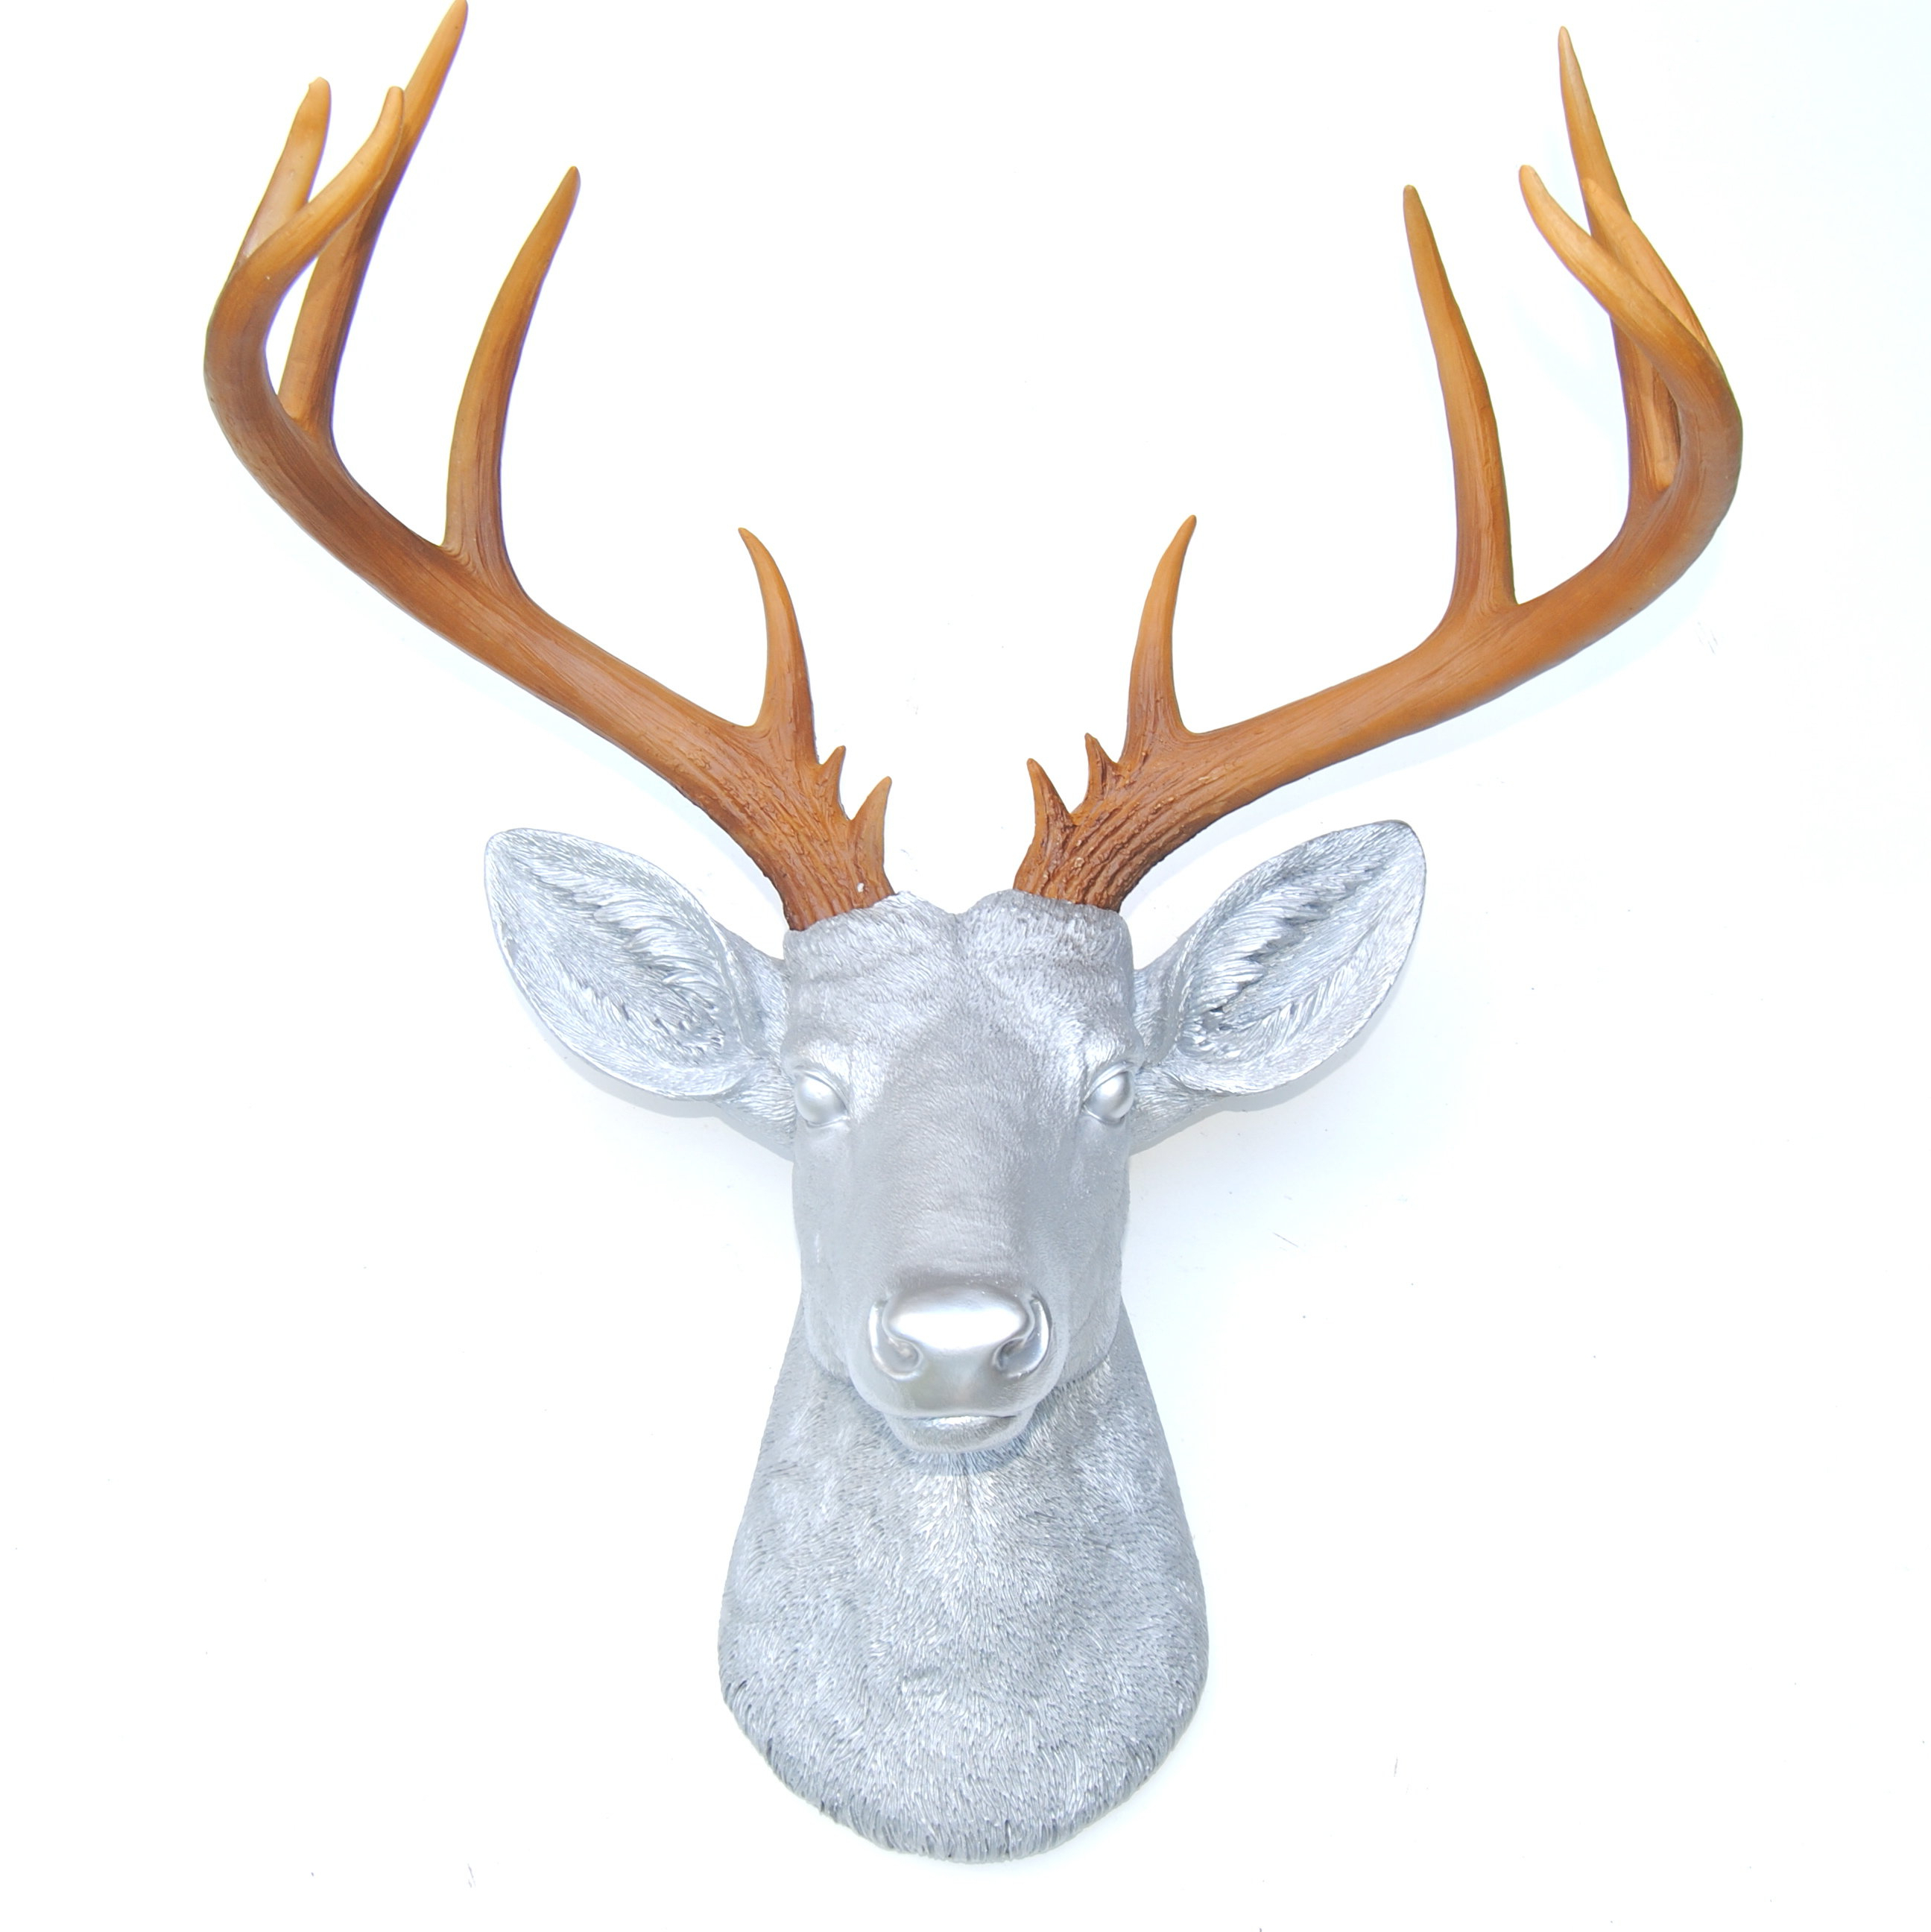 Brayden Studio Large Deer Head Faux Taxidermy Wall Décor (View 4 of 20)